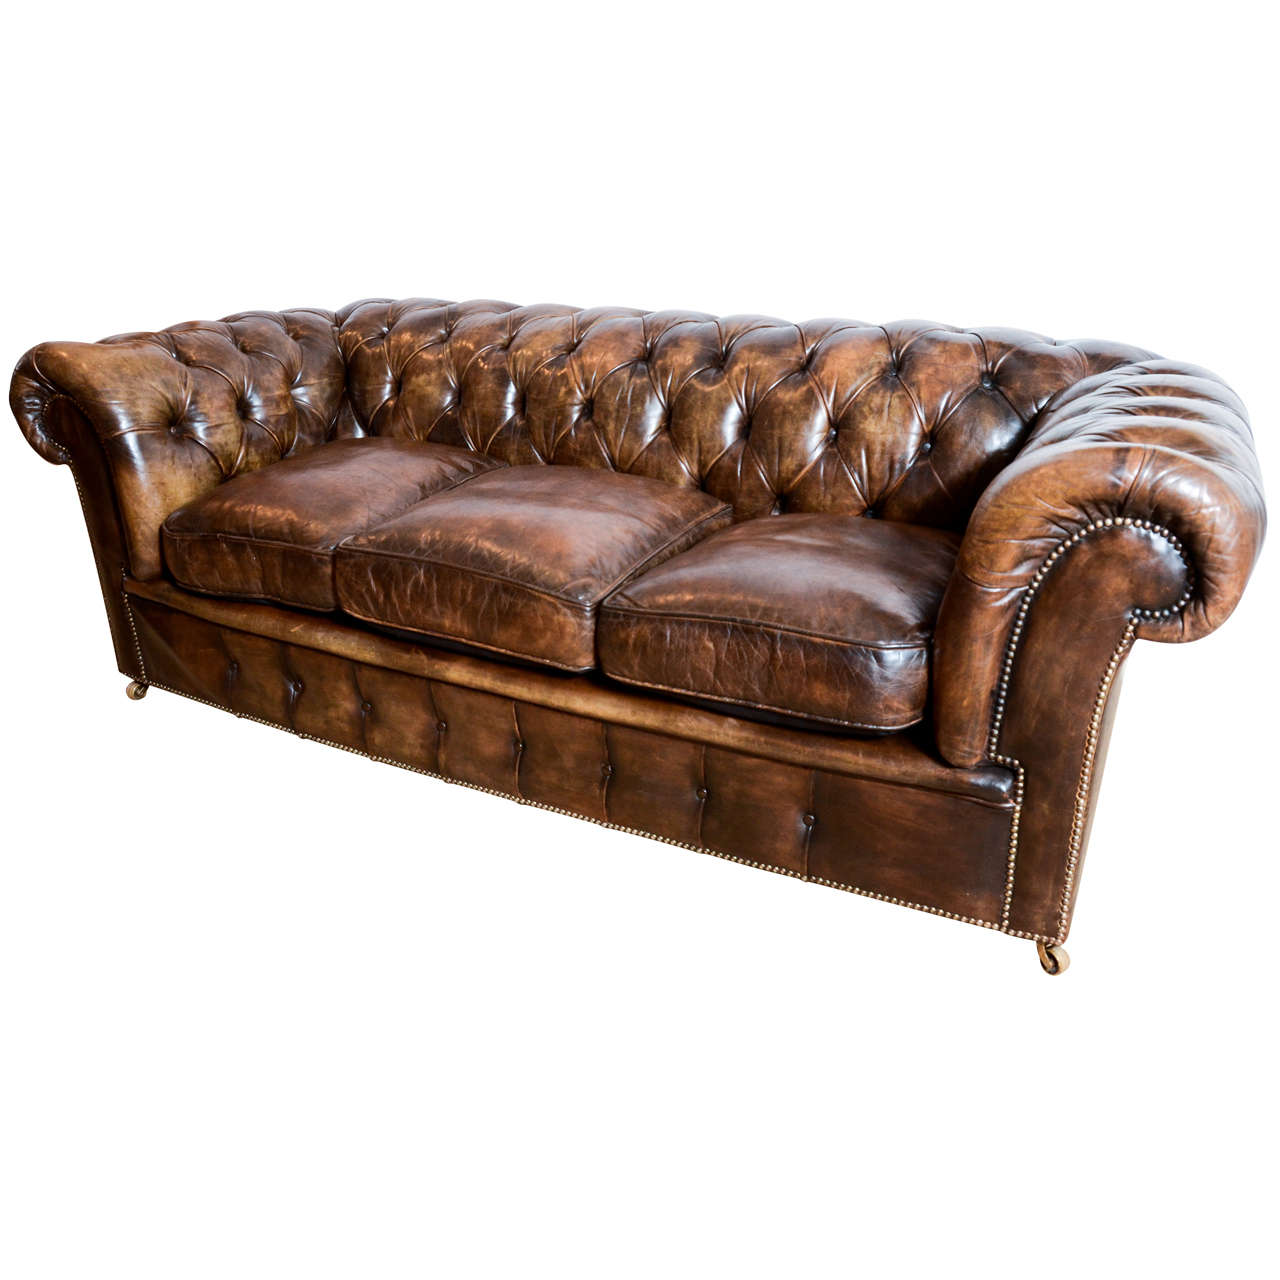 1920 S English Upholstered Leather Chesterfield Sofa At 1stdibs ~ Cheap Tufted Leather Sofa